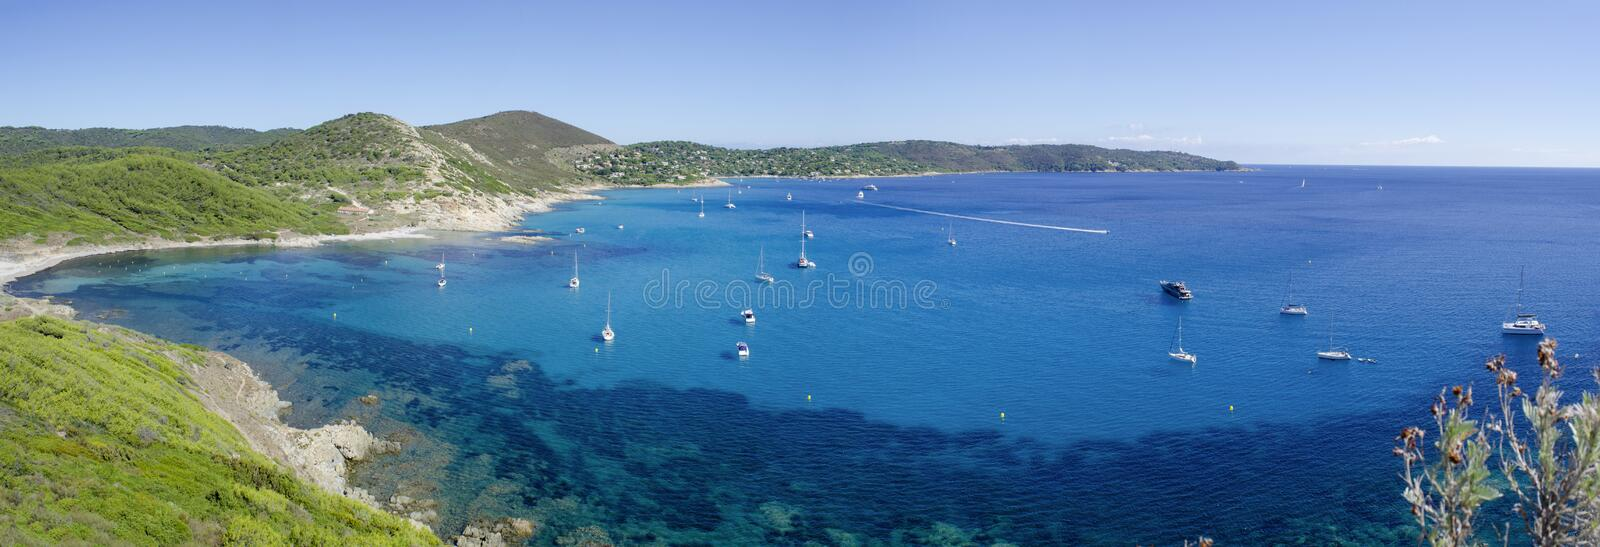 French riviera beaches, near to Saint-tropez. Panorama of Cap taillat beaches, near to Saint-tropez, french riviera stock photography